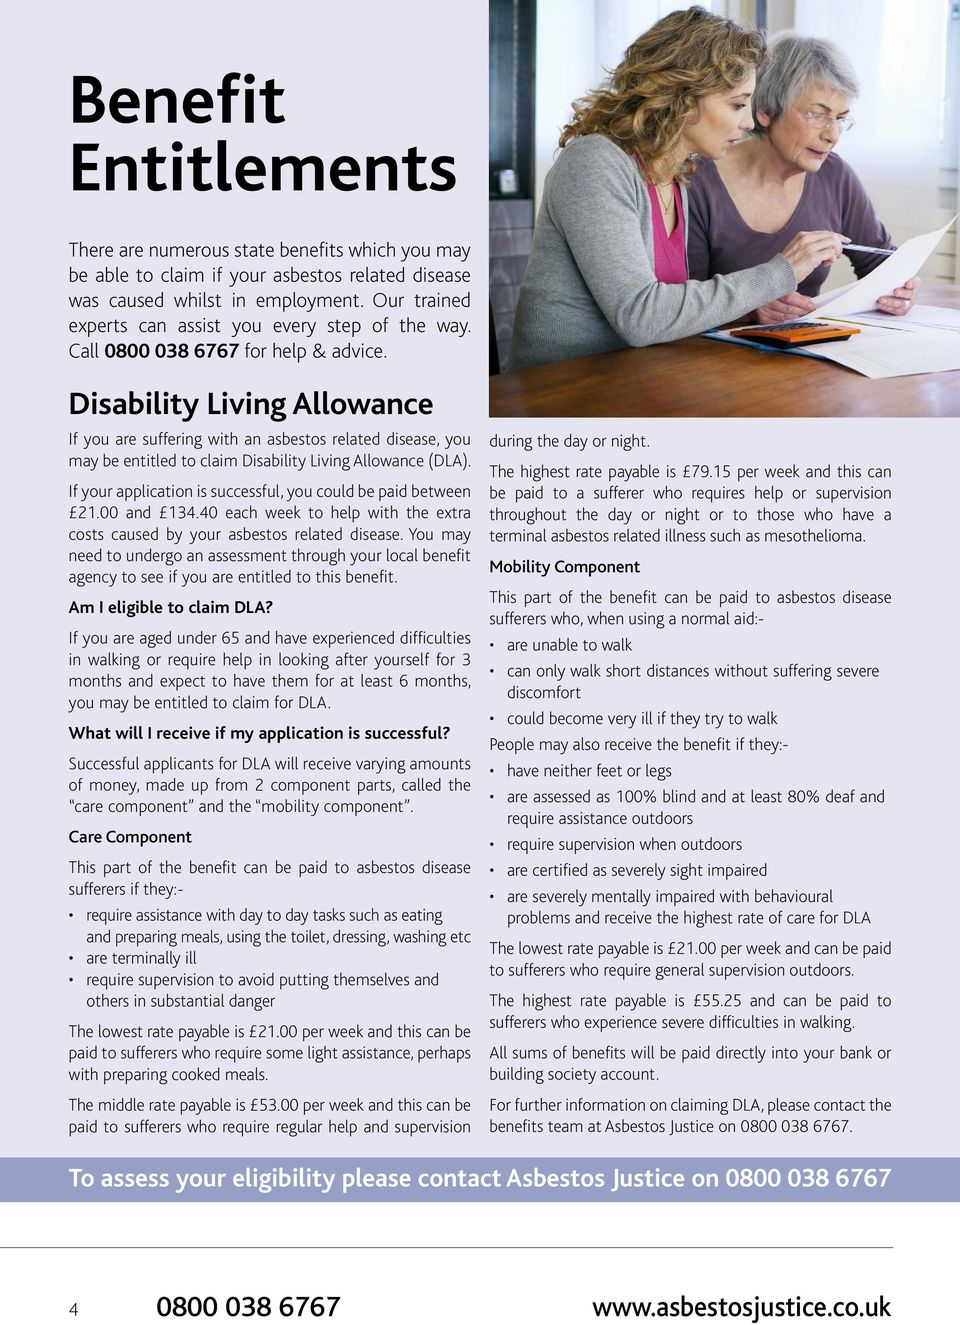 Disability Living Allowance If you are suffering with an asbestos related disease, you may be entitled to claim Disability Living Allowance (DLA).